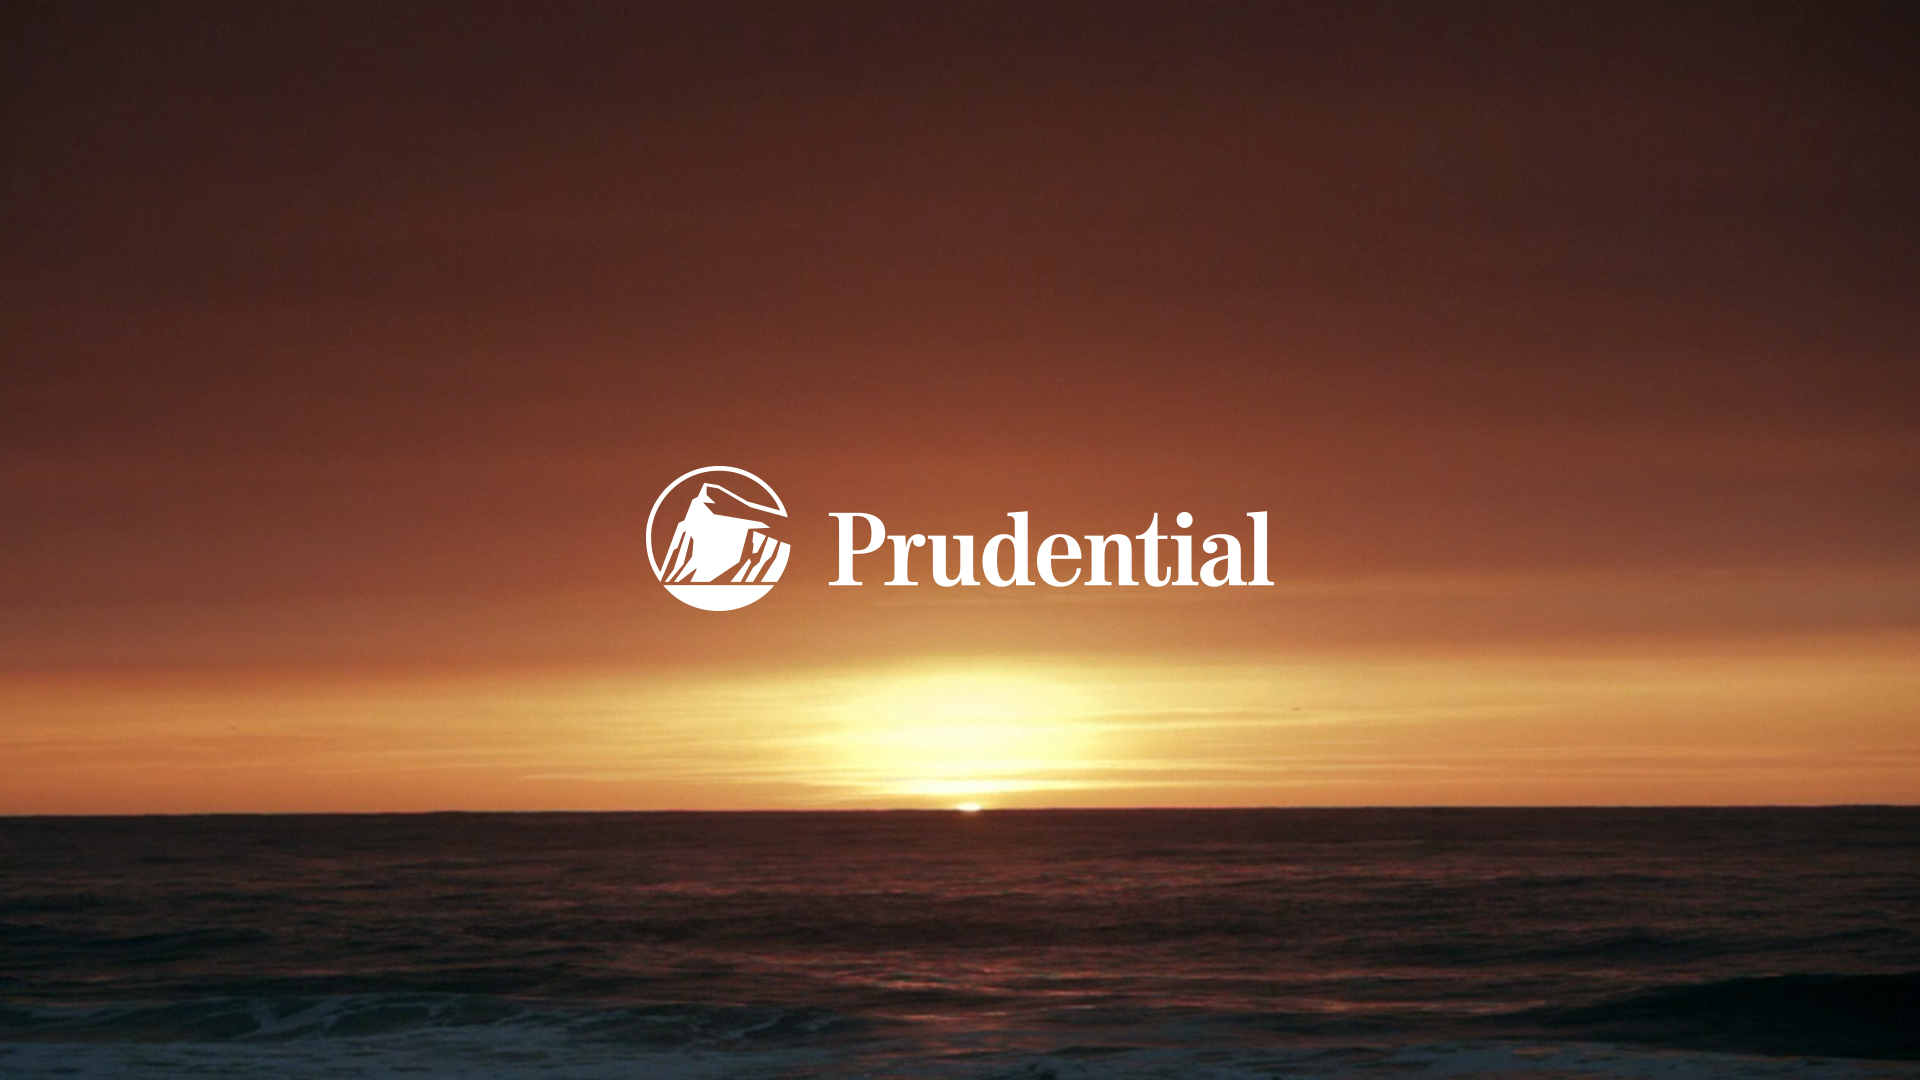 PrudentialRebrand_Header.jpg